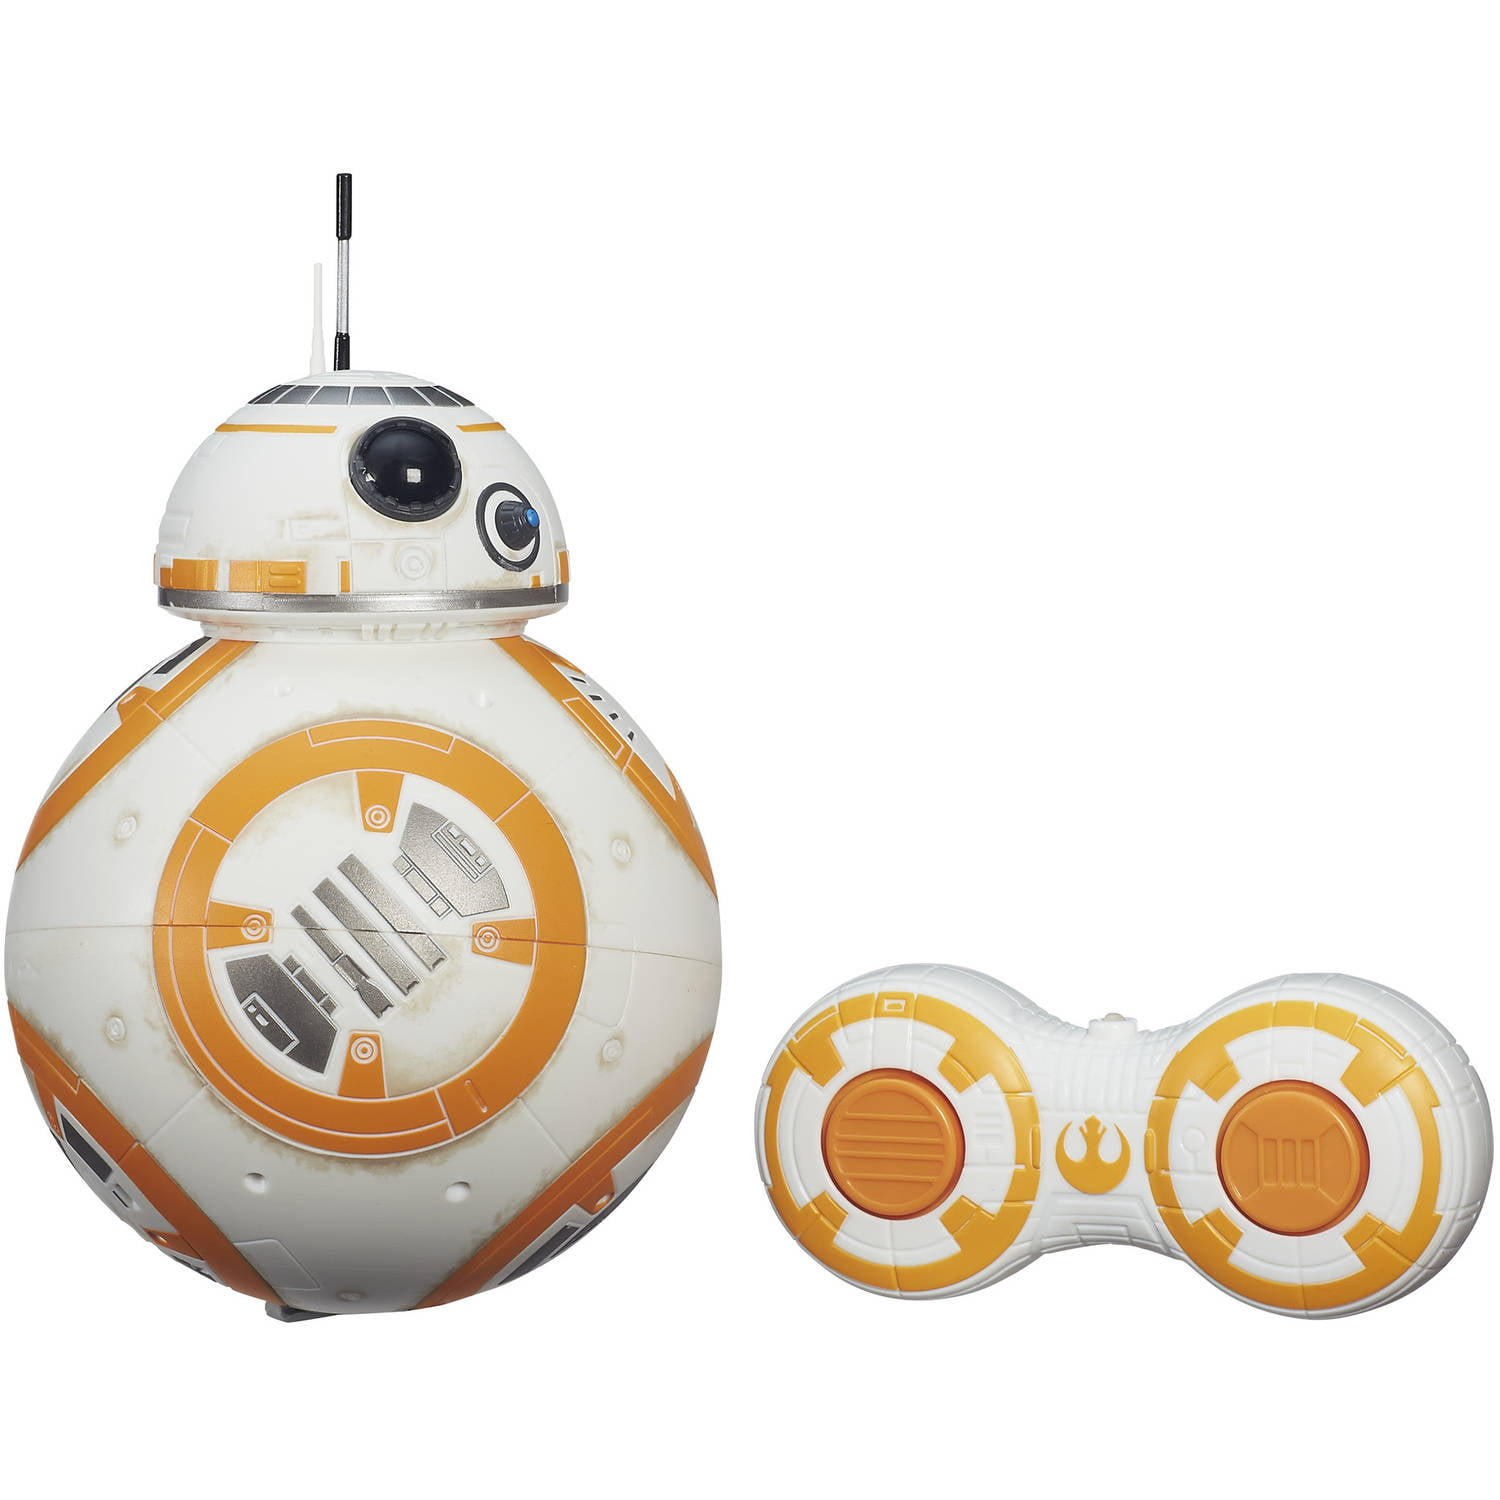 Star Wars The Force Awakens RC BB-8 by Hasbro